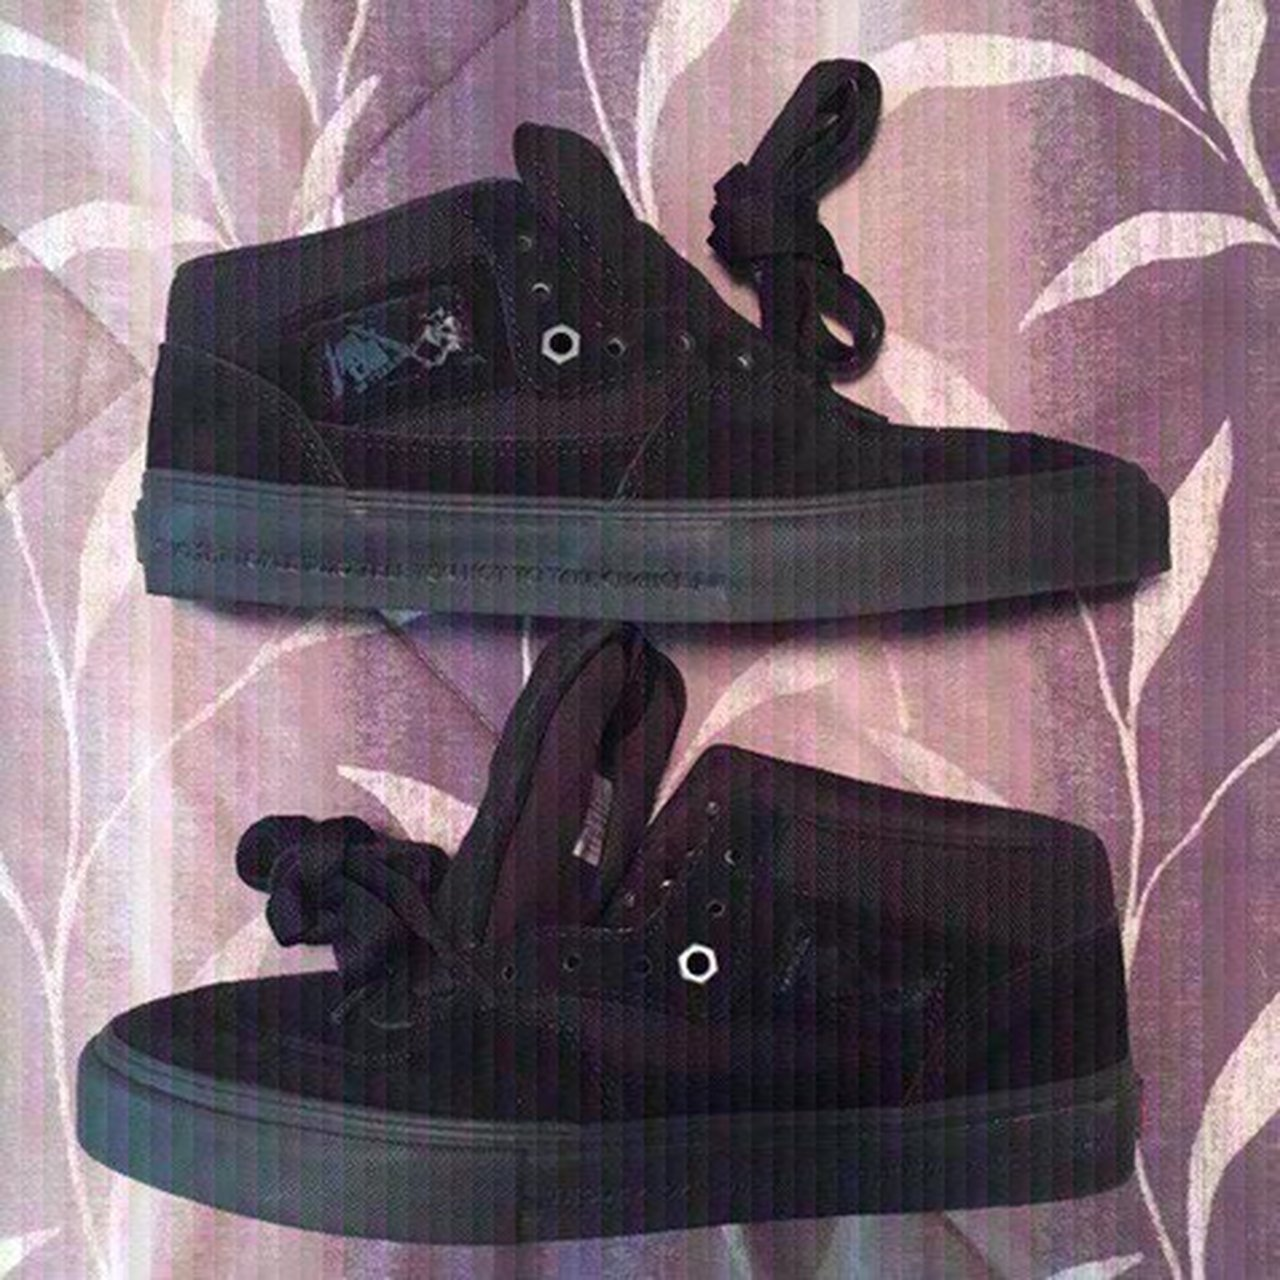 "11970cee18 Vans x Metallica half cab pro🔥 -limited edition 2012 All"" - Depop"